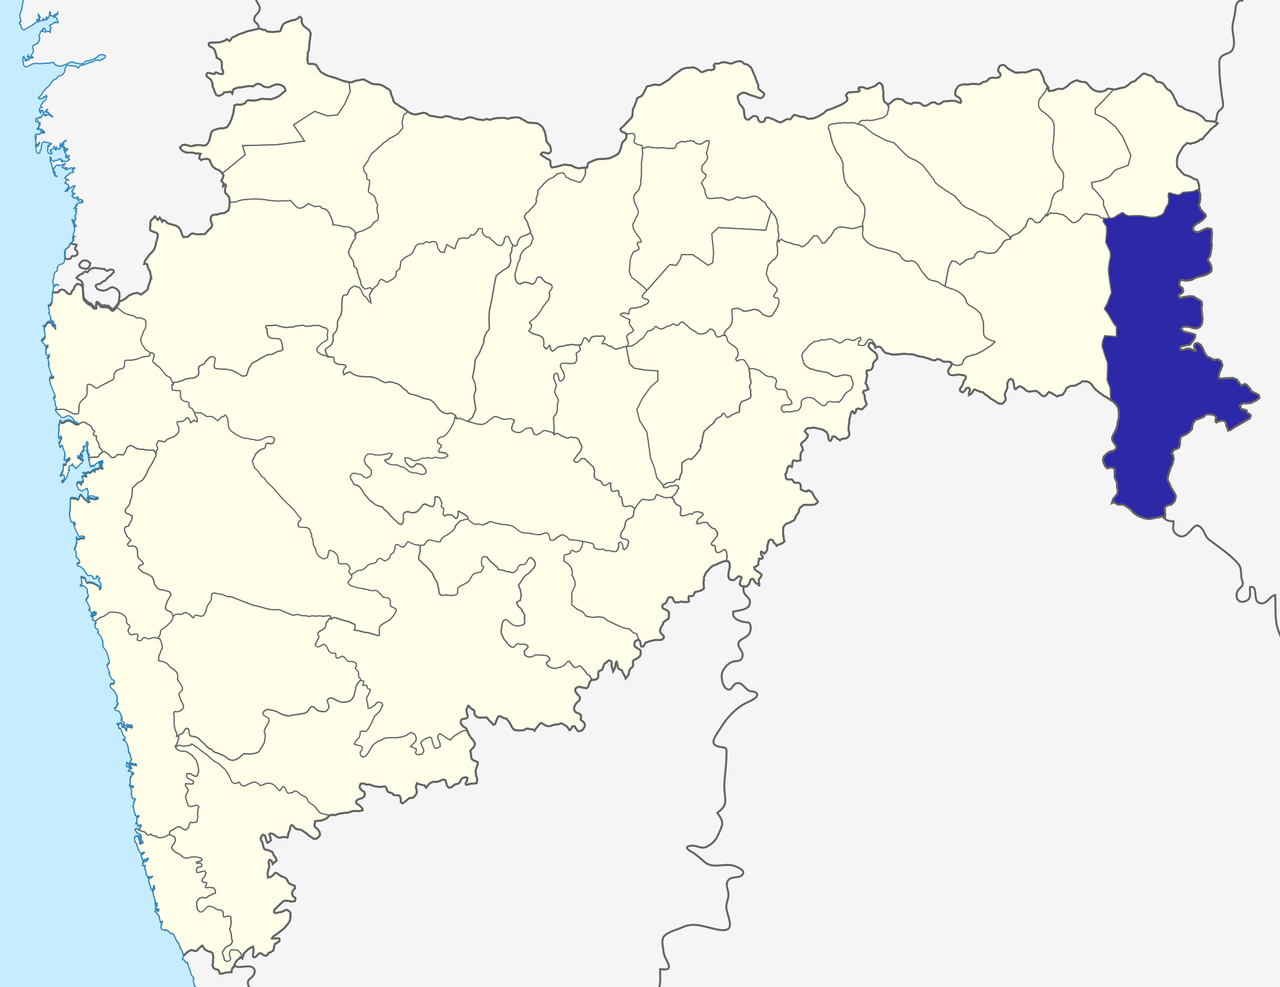 Gadchiroli, district à l'Est du Maharashtra